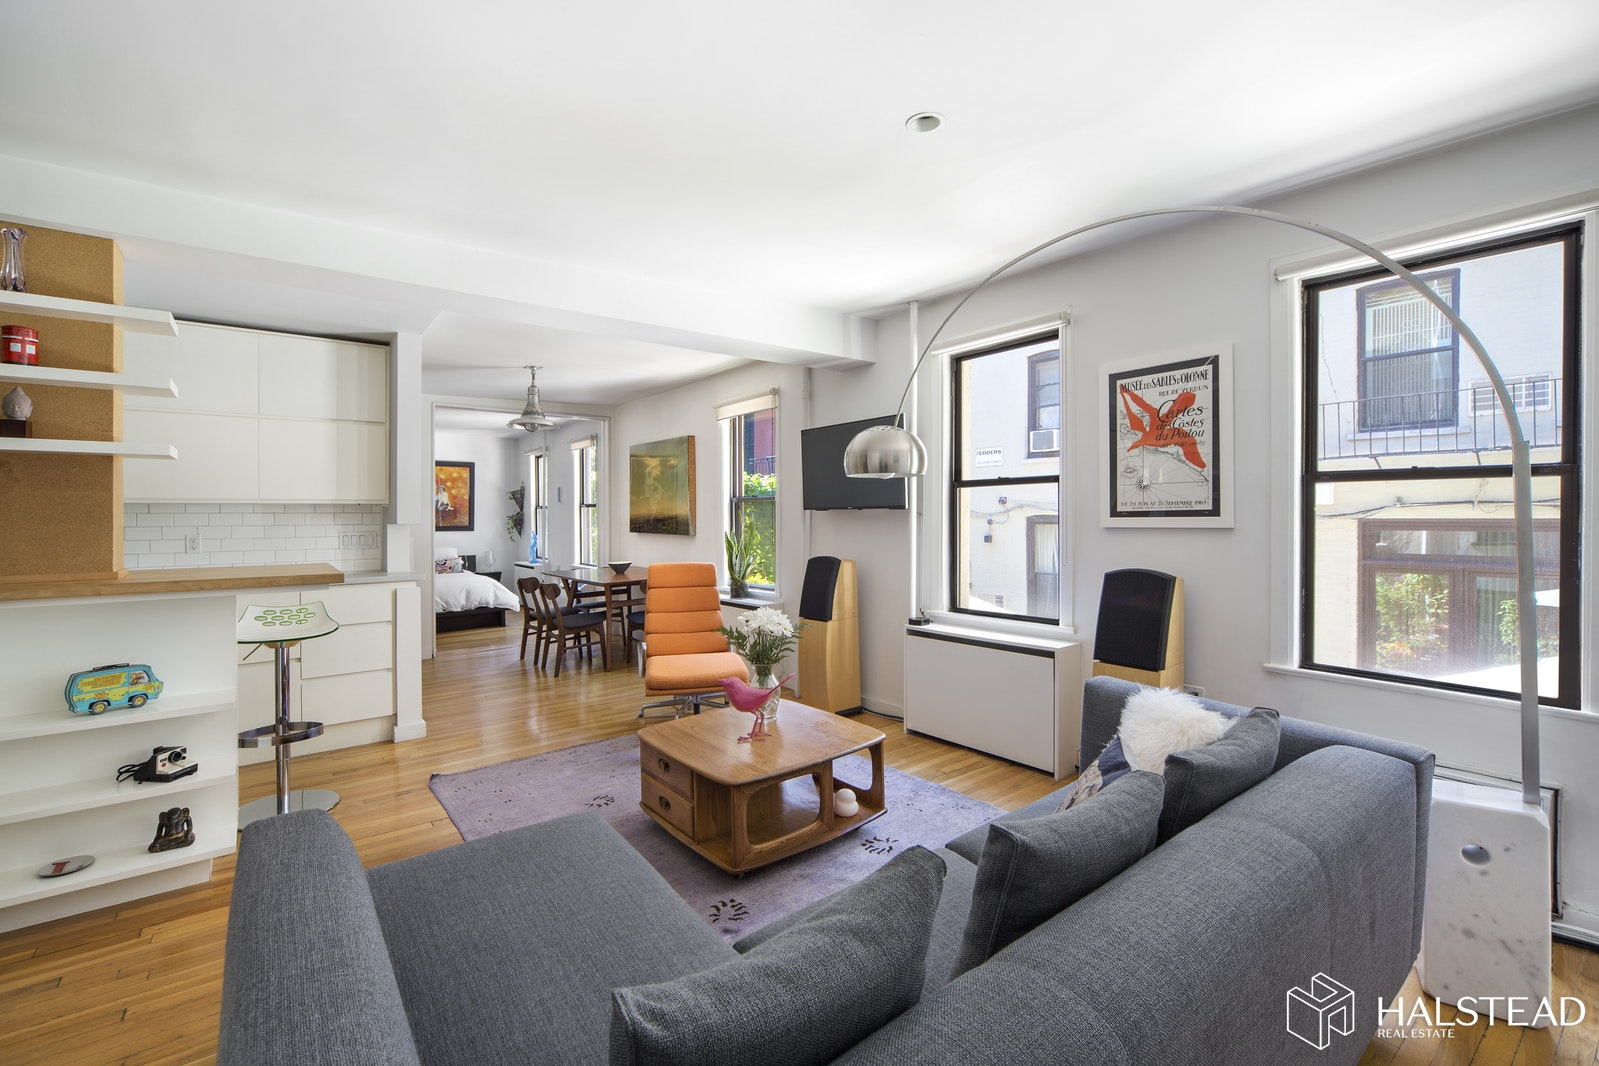 309 West 20th Street 2r, Chelsea, NYC, 10011, $1,345,000, Property For Sale, Halstead Real Estate, Photo 1